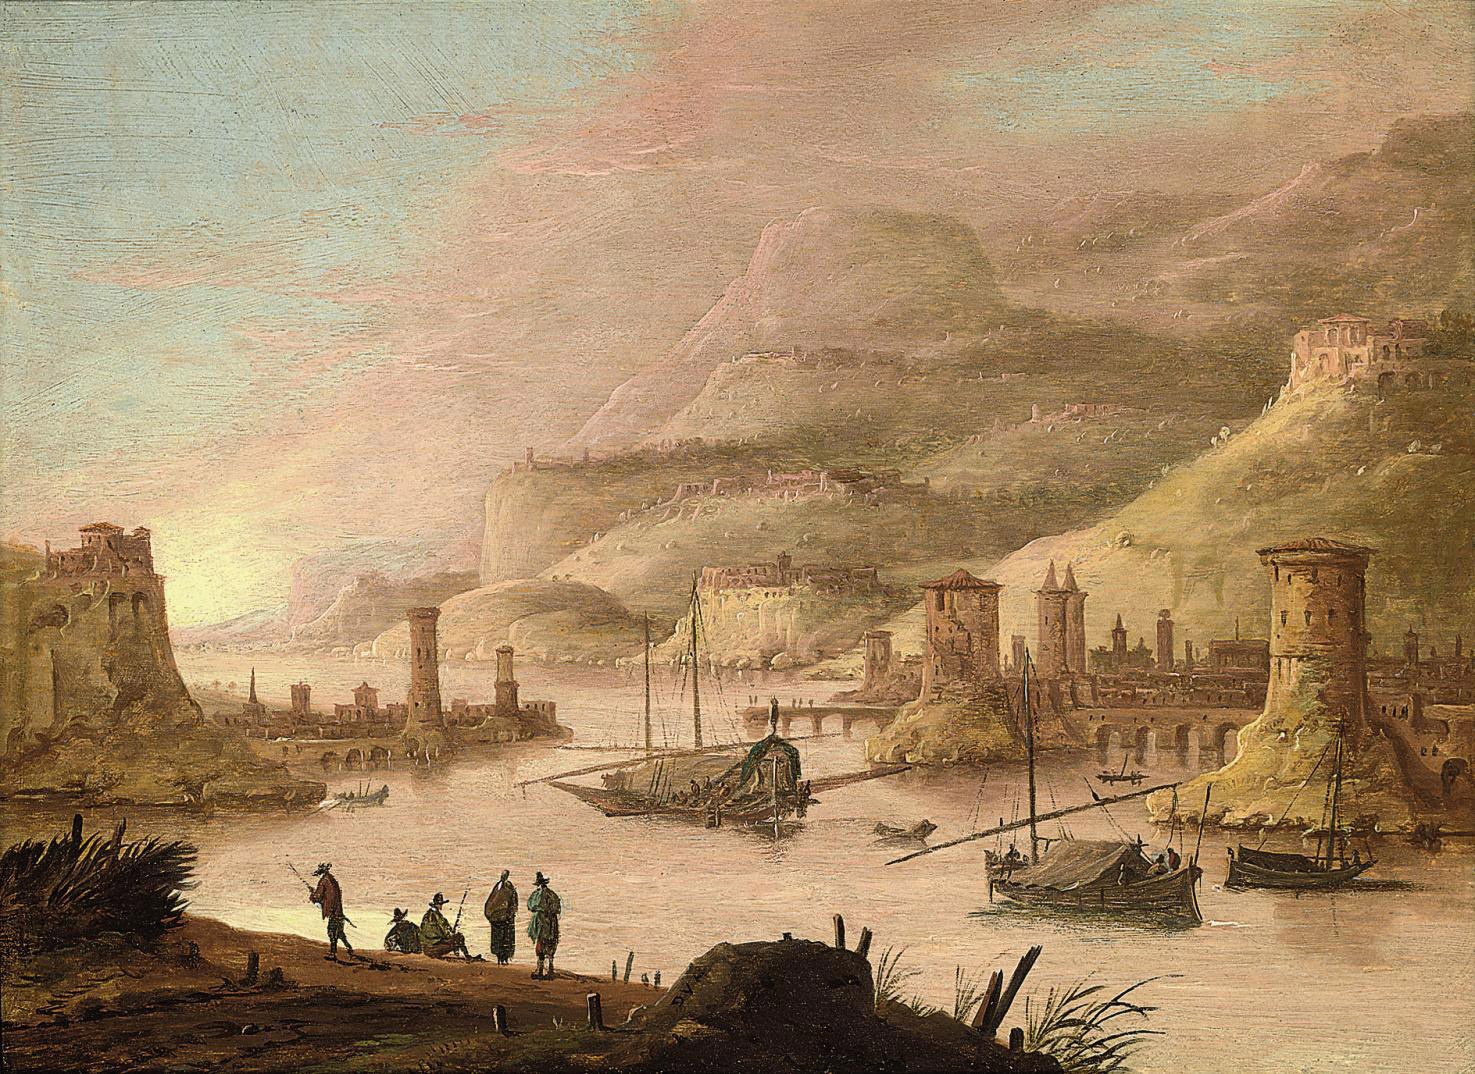 A mountainous river landscape with figures on a bank, a town beyond